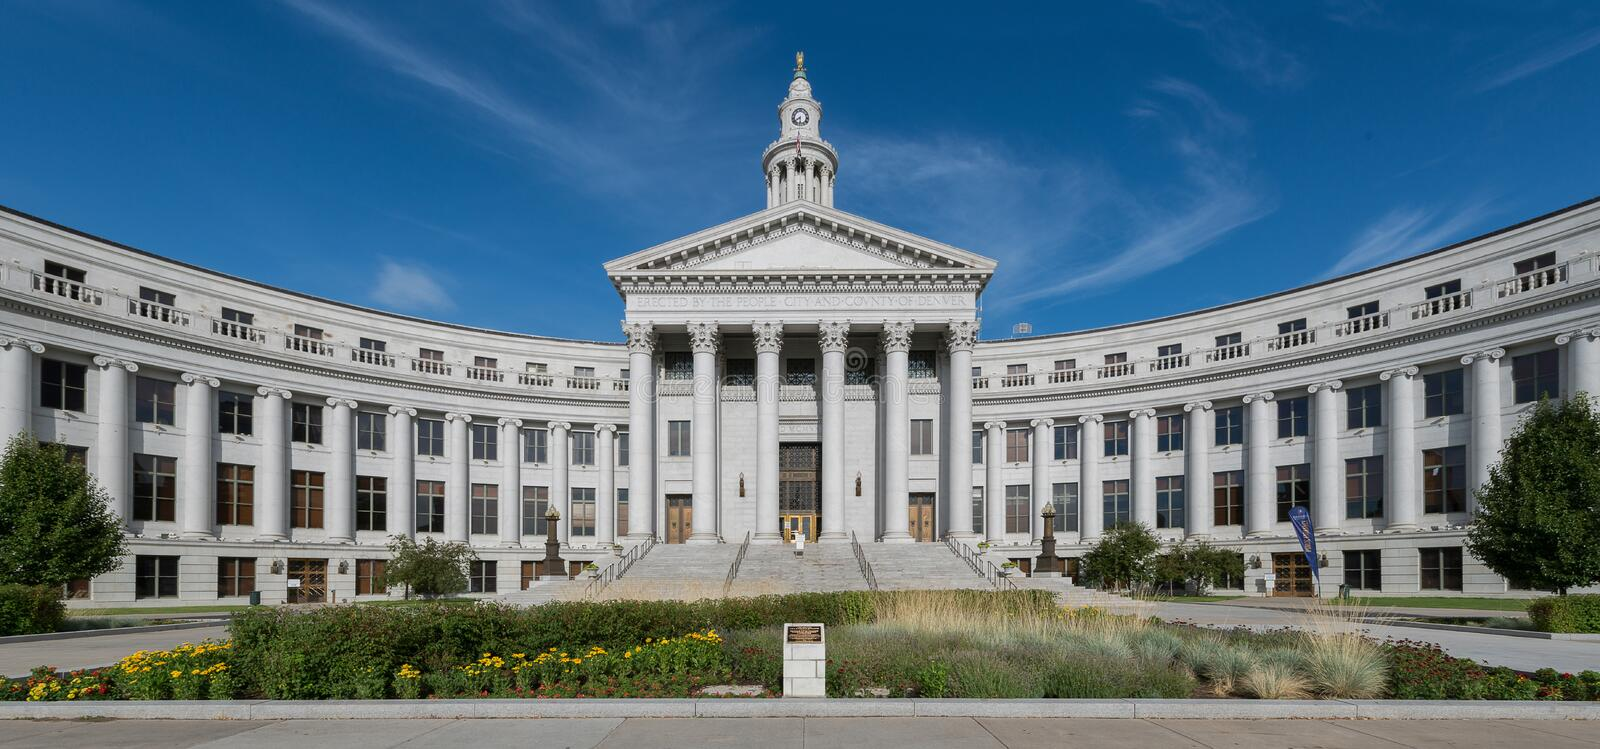 Denver City Hall royalty free stock images